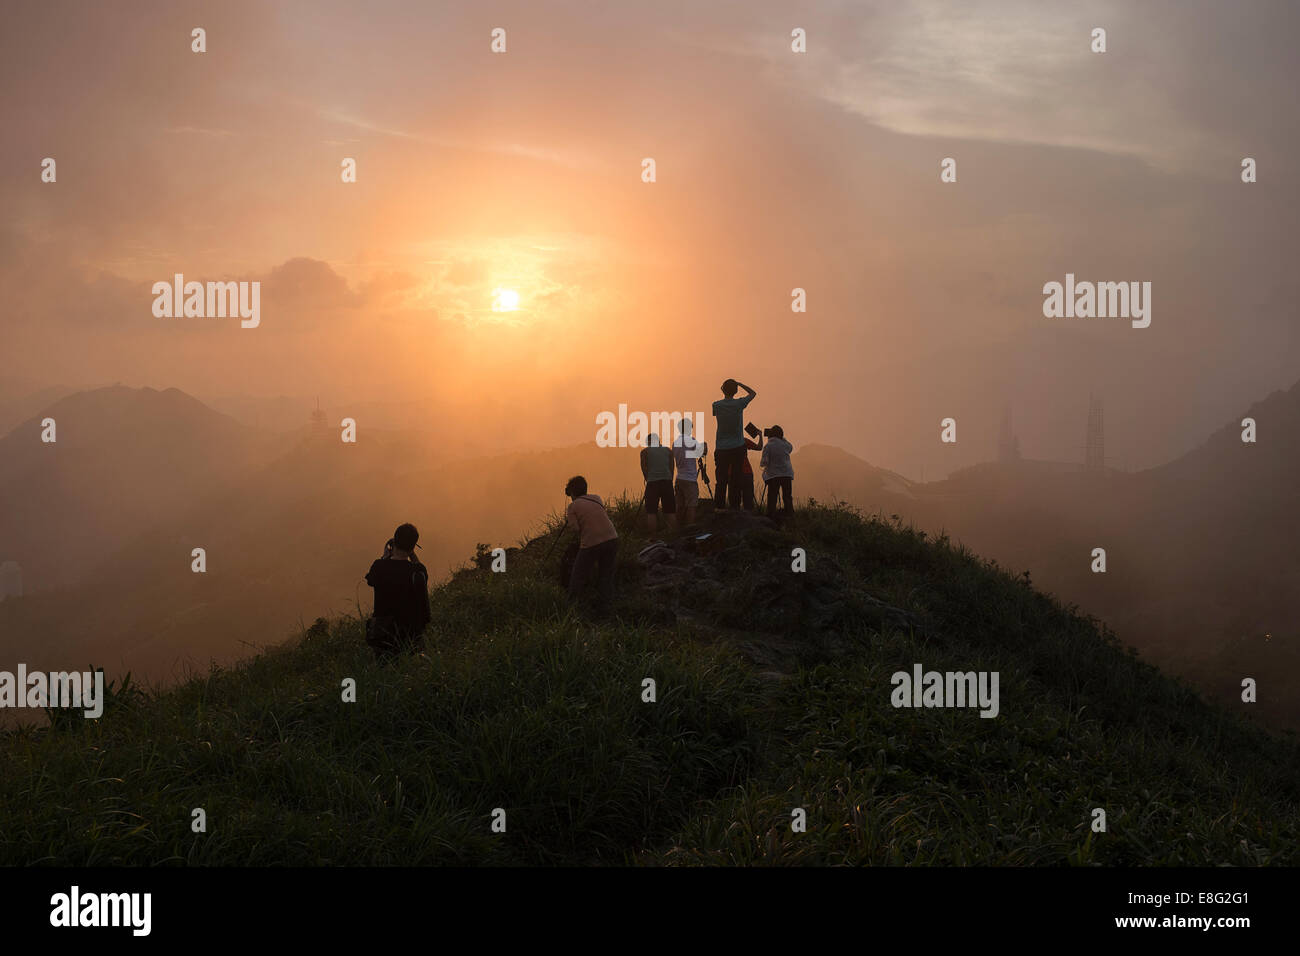 Photographers shoot the setting sun from the top of Kowloon Peak (Fei Gno Shan) in Hong Kong on August 30, 2014 Stock Photo